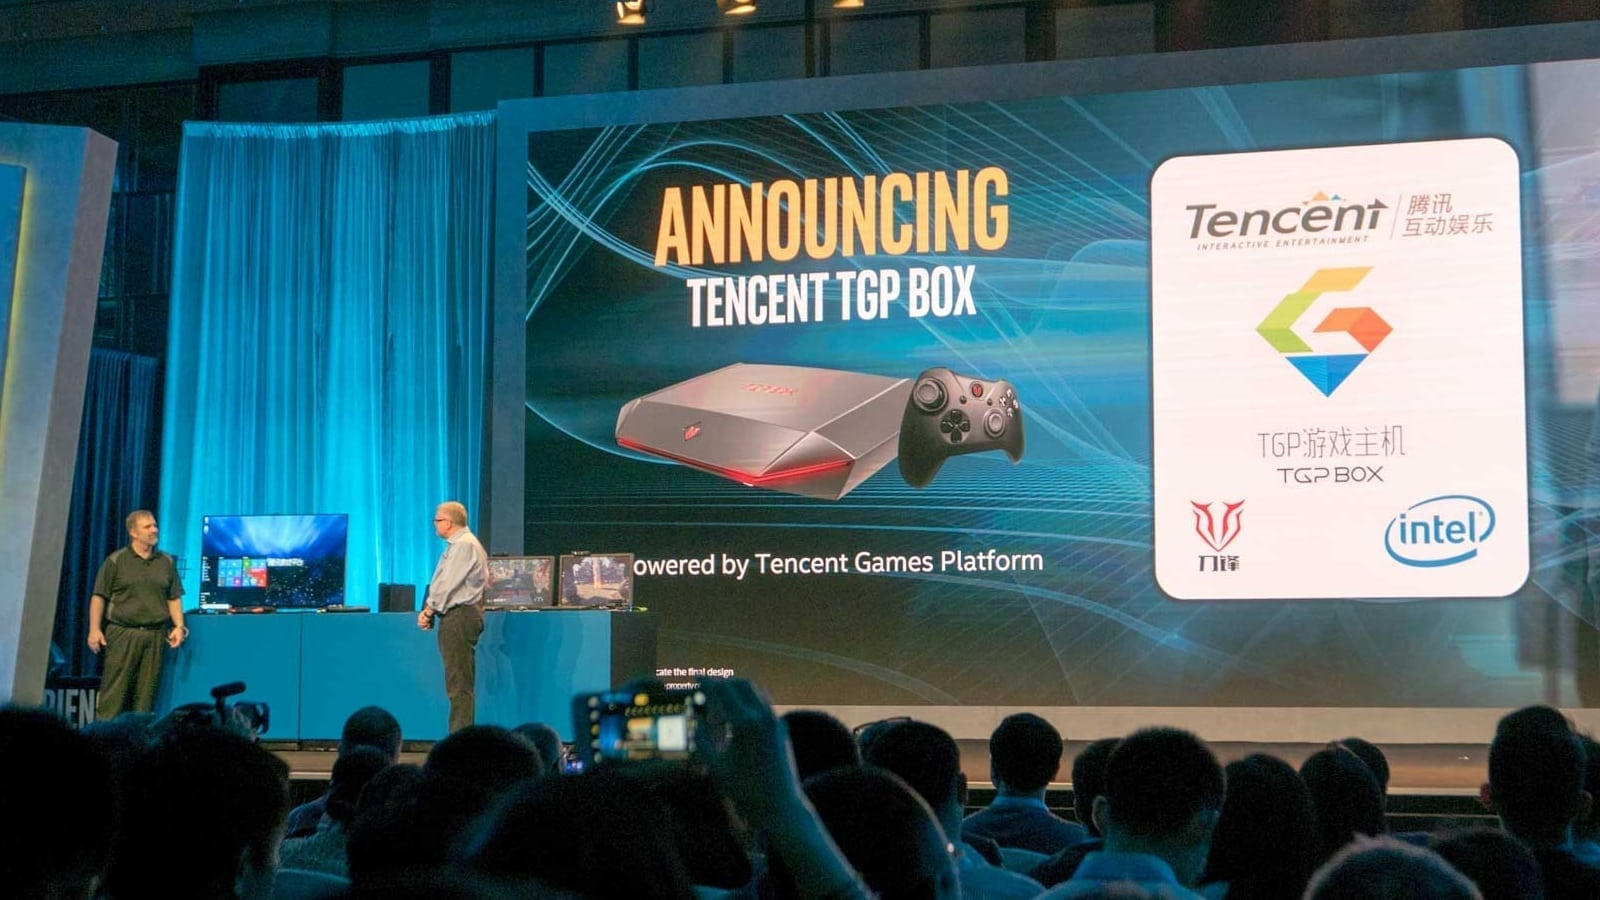 Tencent TGP Box photo